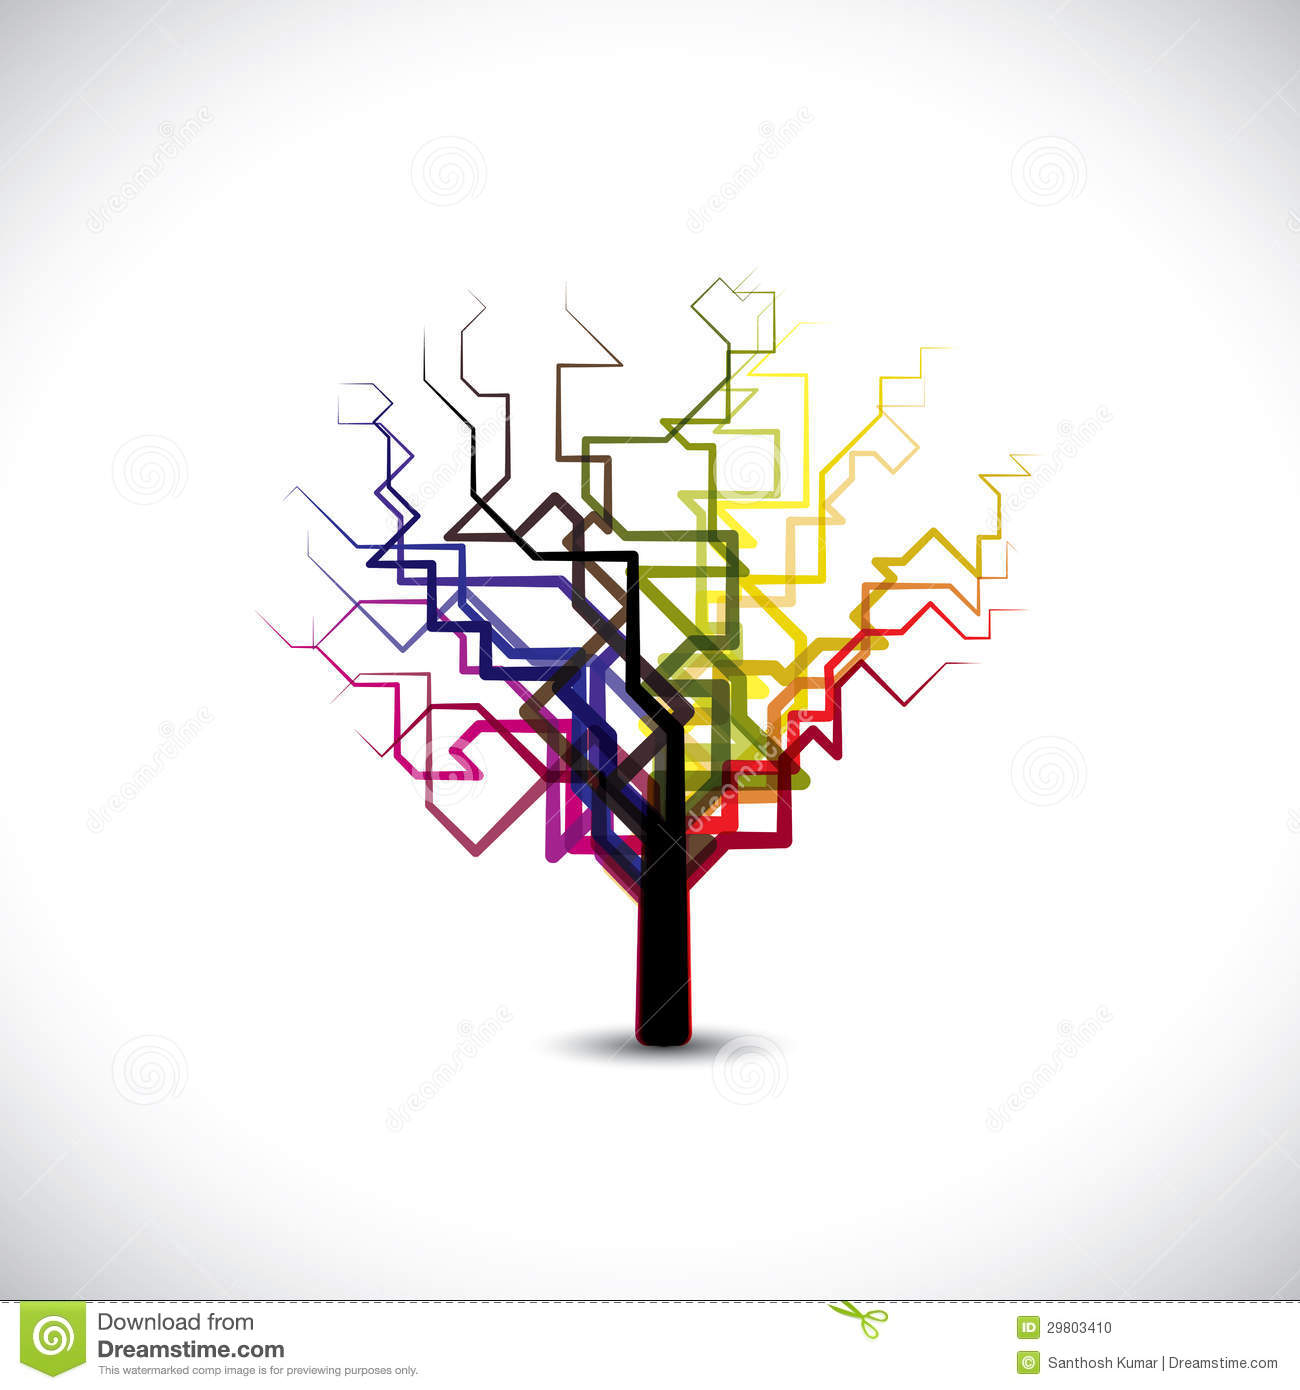 Abstractcolorful graphic tree symbol in digital o stock vector abstractcolorful graphic tree symbol in digital o biocorpaavc